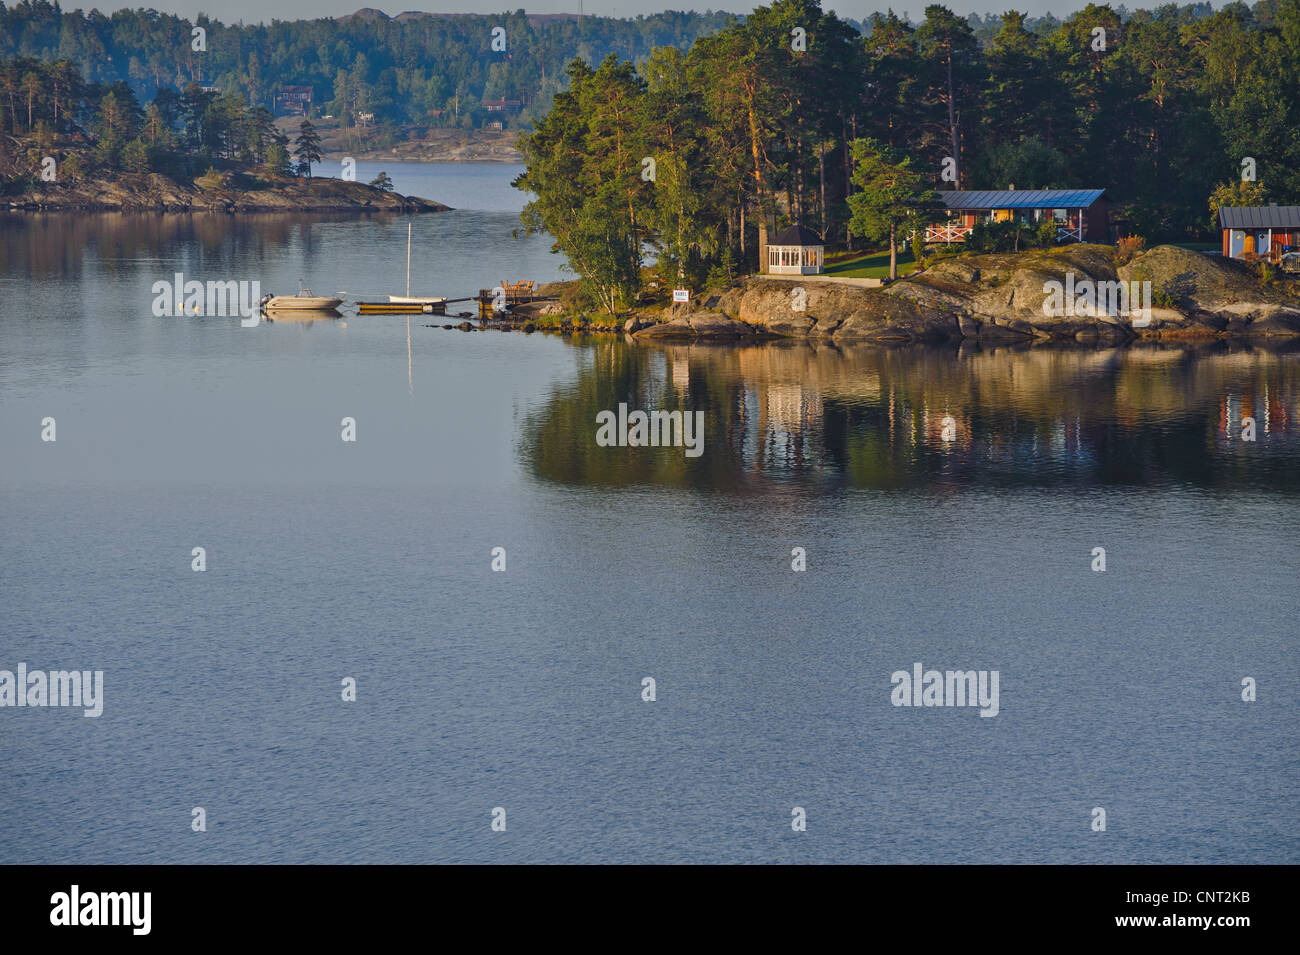 Cottages and pleasure boats are common along the Baltic Sea amid the islands of the Stockholm Archipelago on the - Stock Image